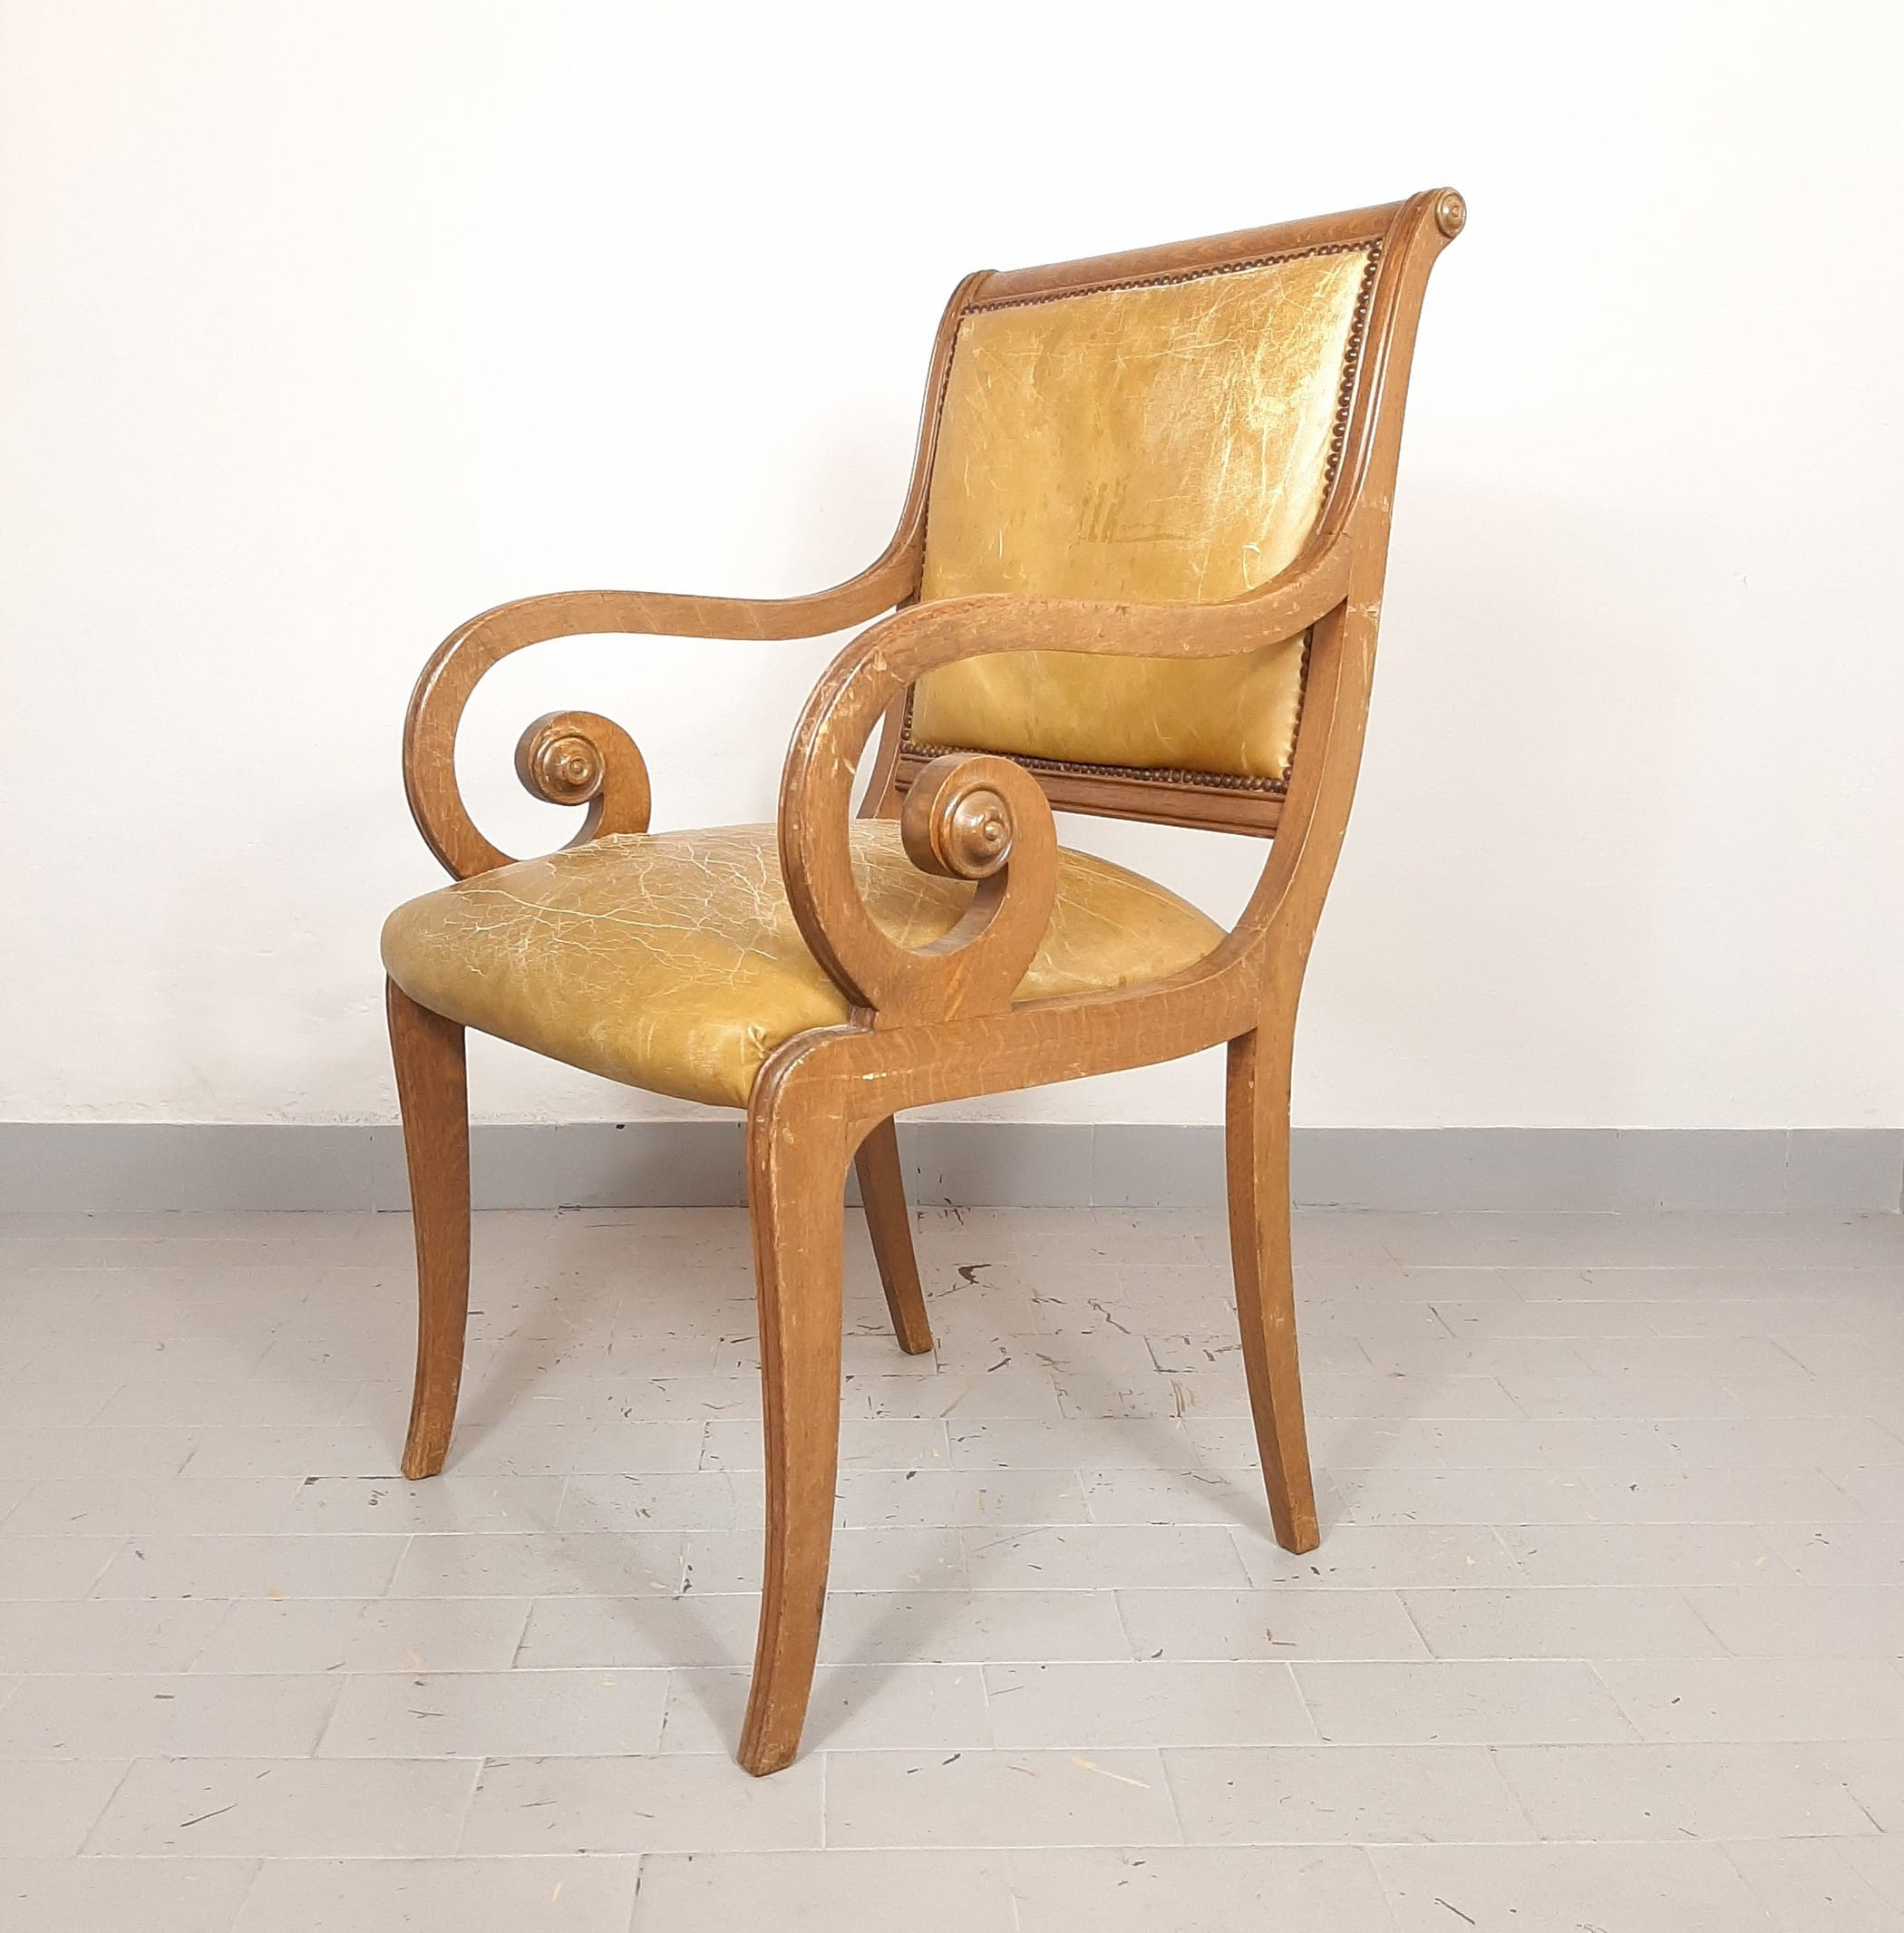 Vintage beautifull dining chair '50s Italy Wood Leather Furniture Italy